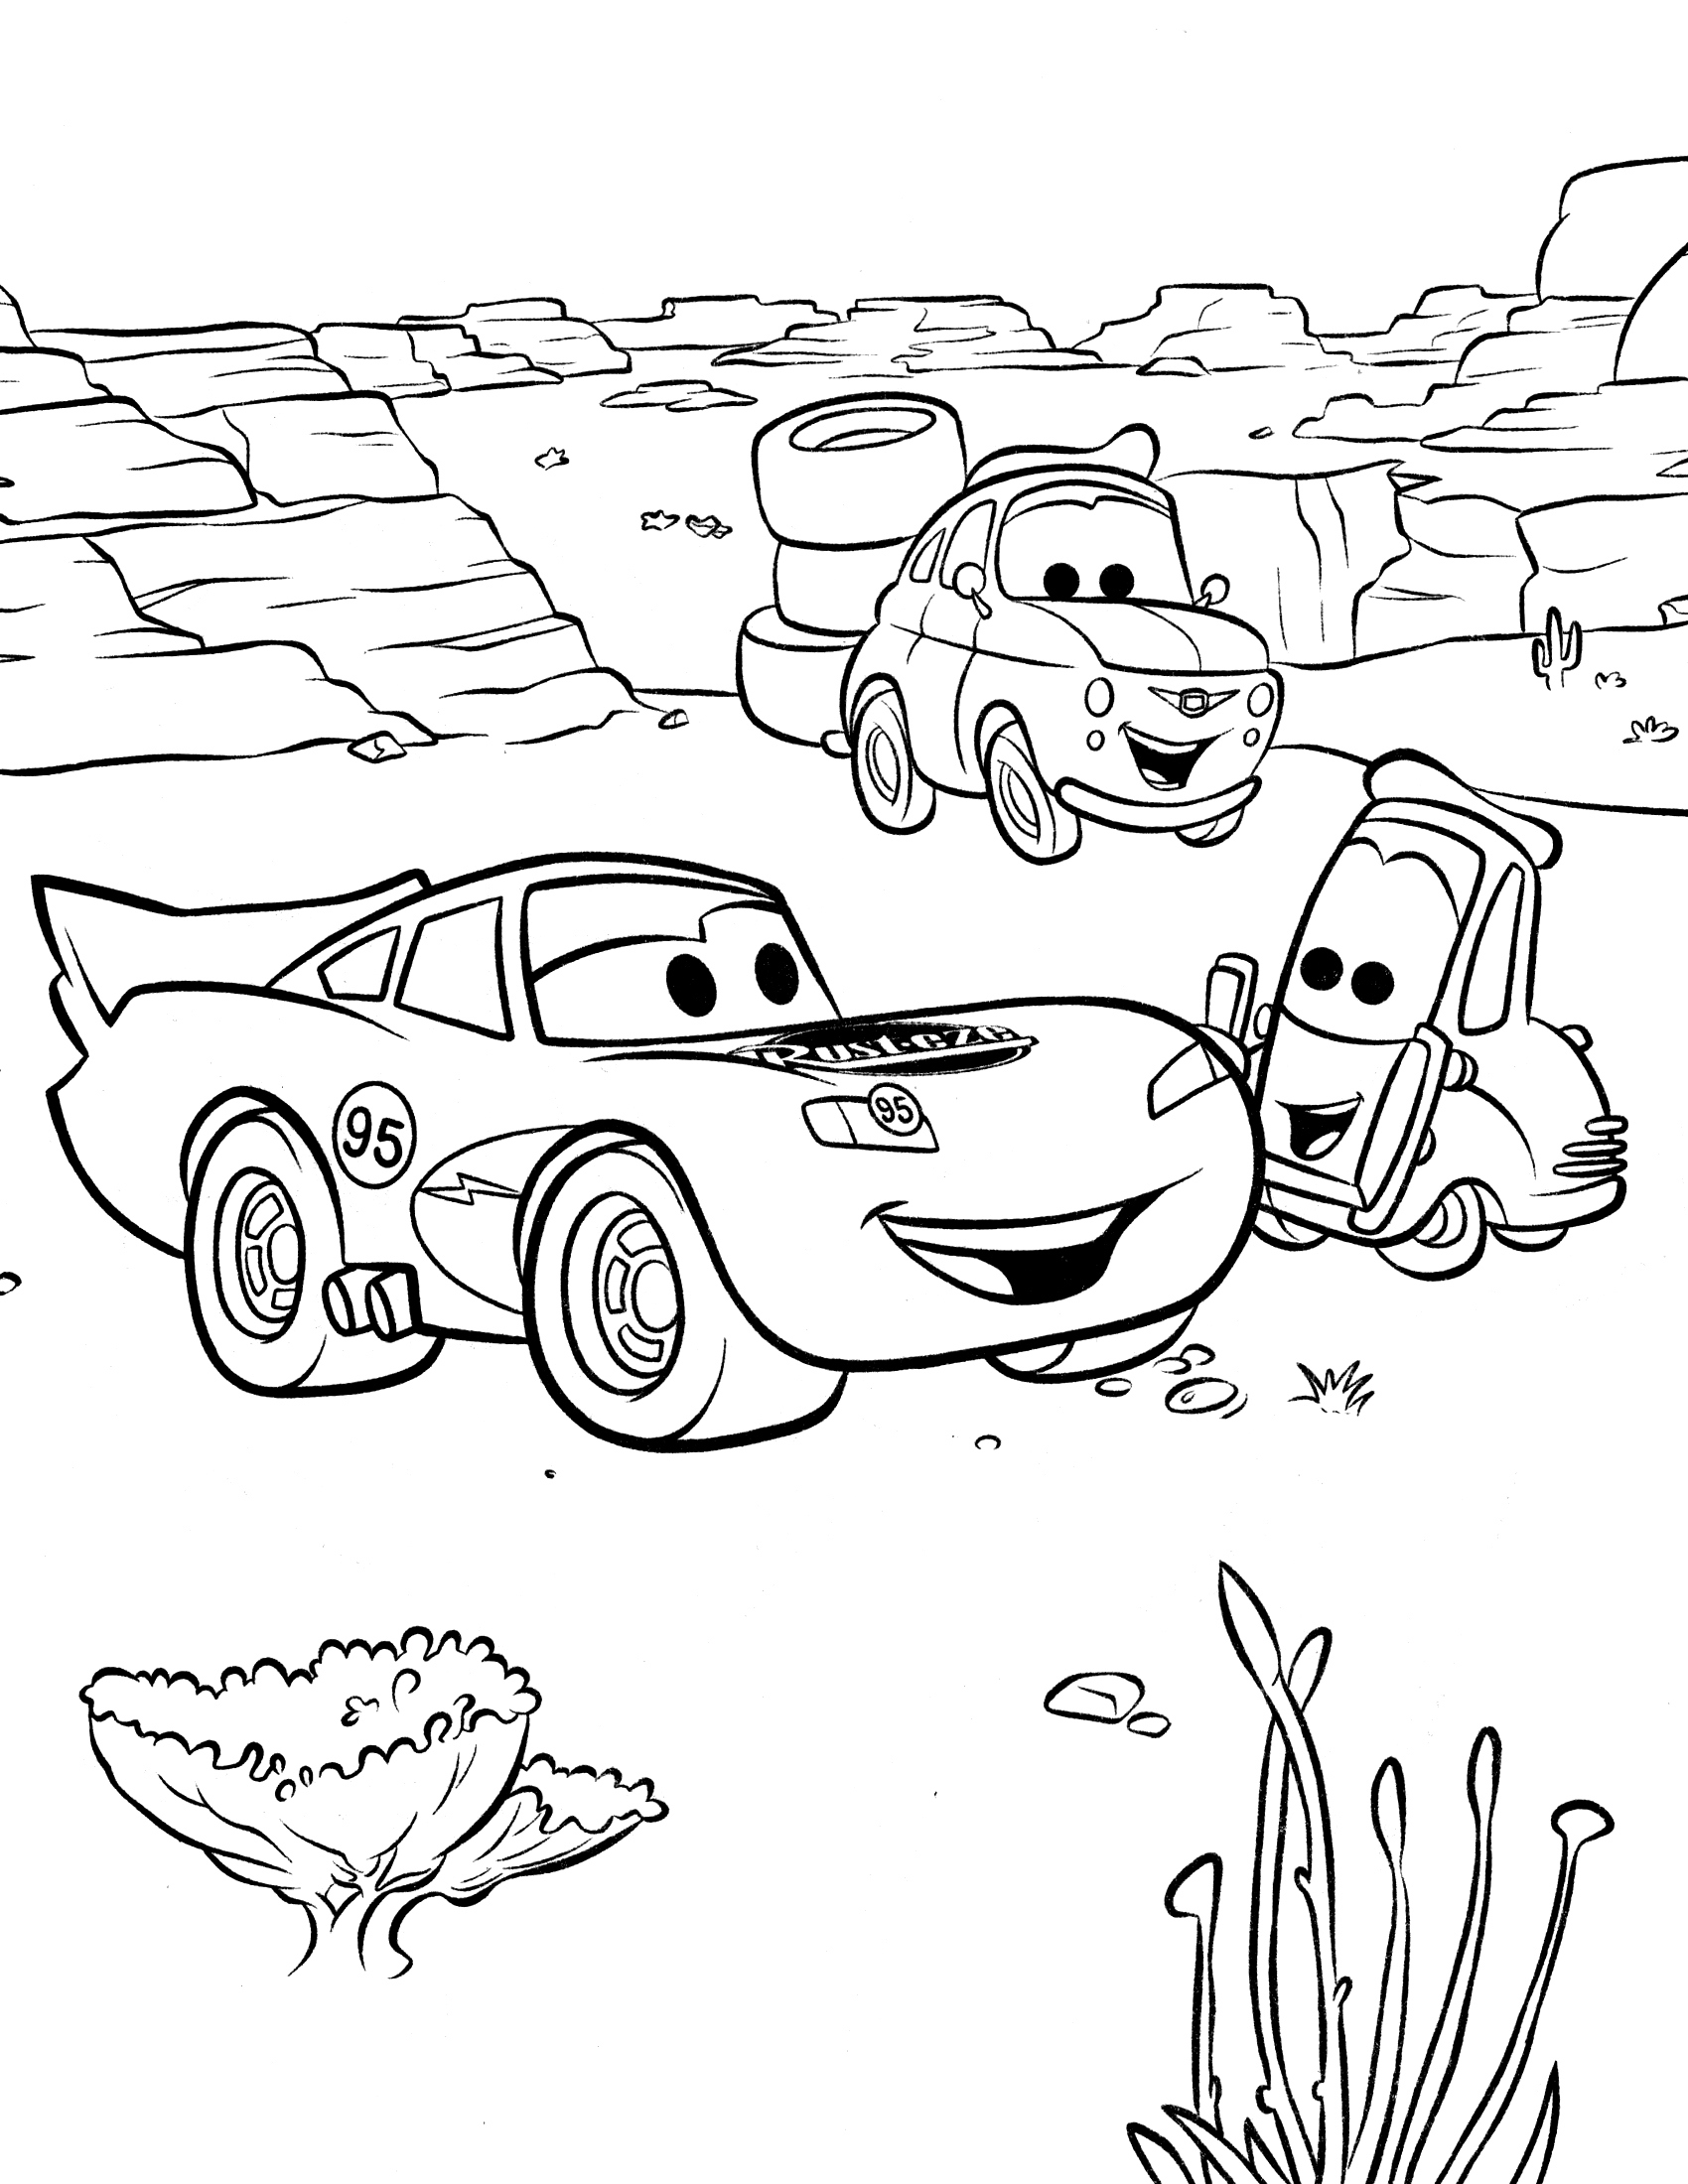 1700x2200 Coloring Pages Of Cars Luxury Tow Mater From Cars Coloring Page